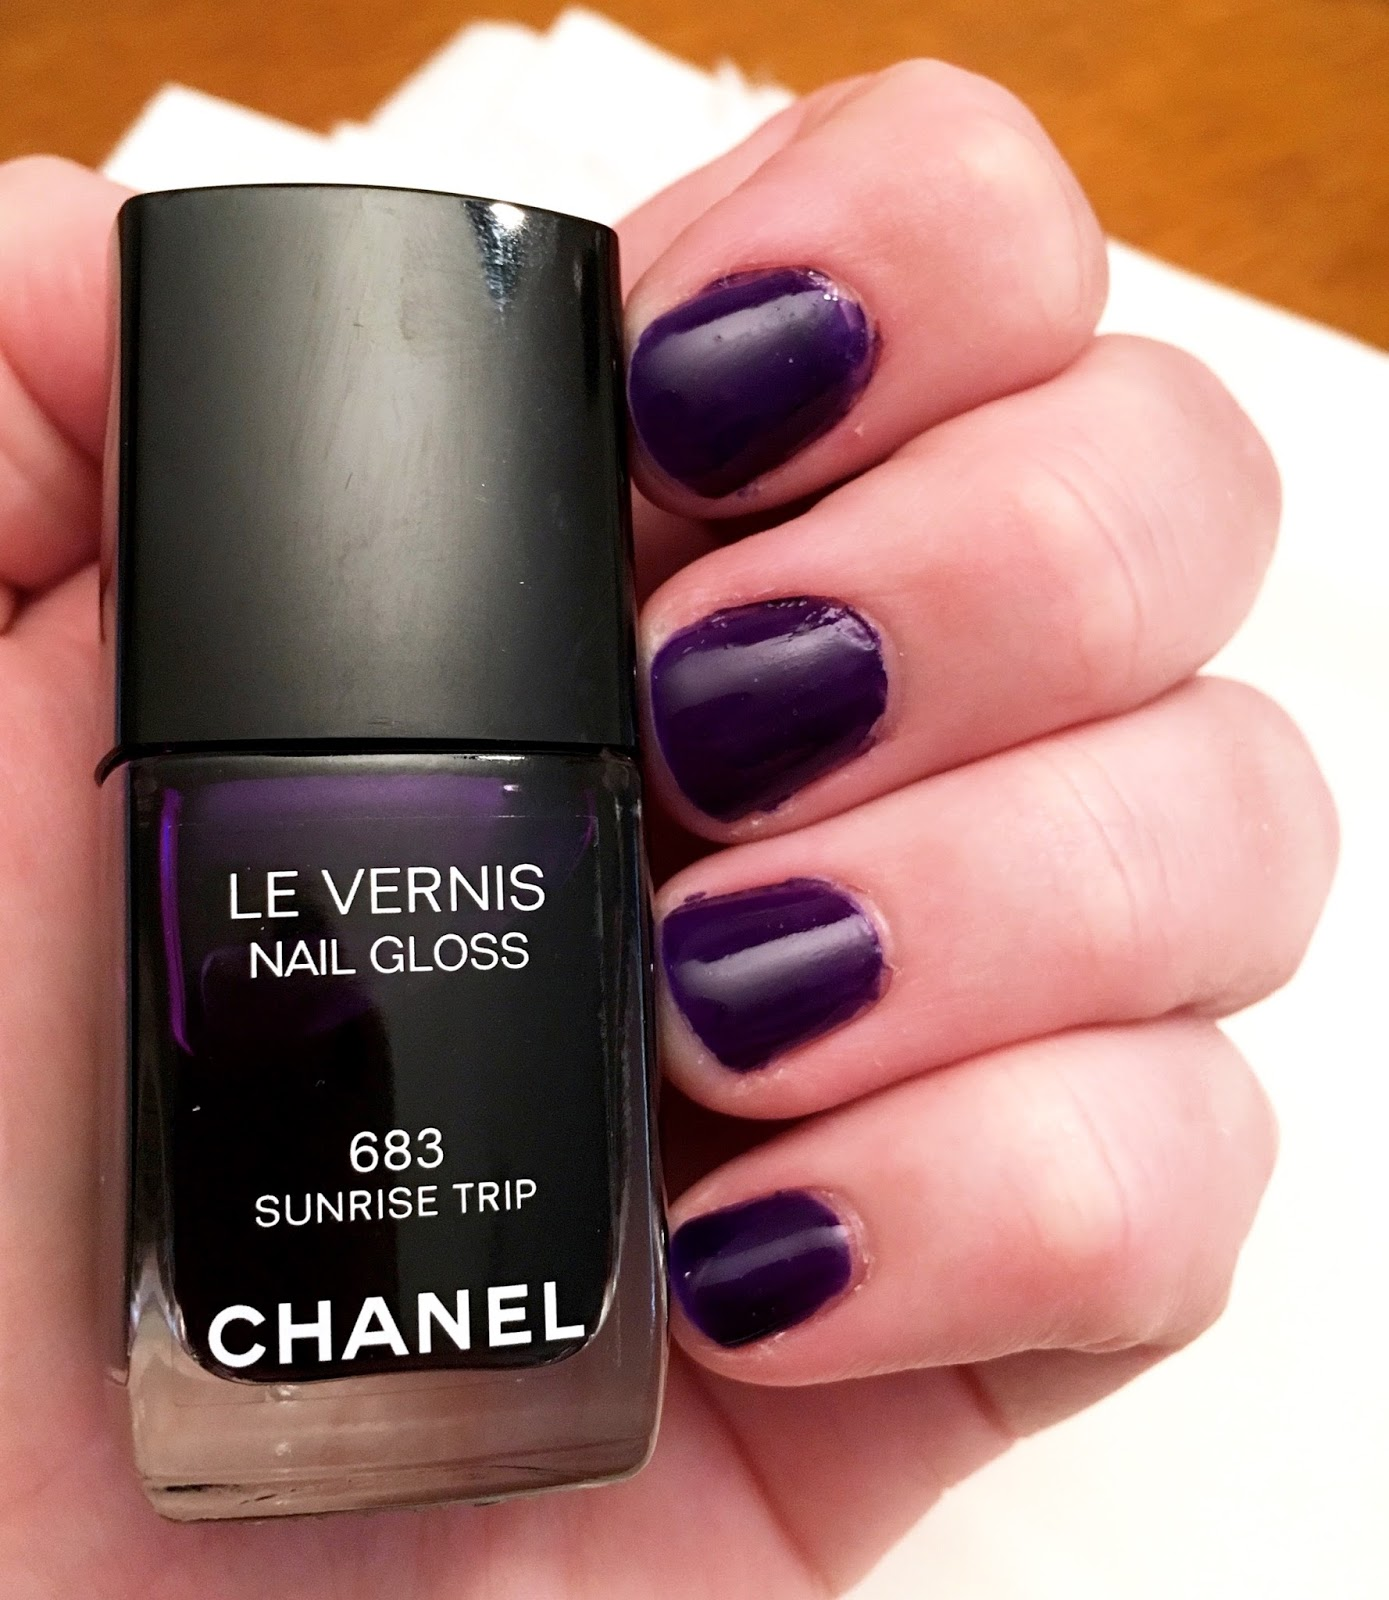 Luxury on the Lips: Nailed It - Chanel Nail Gloss in 683 Sunrise Trip